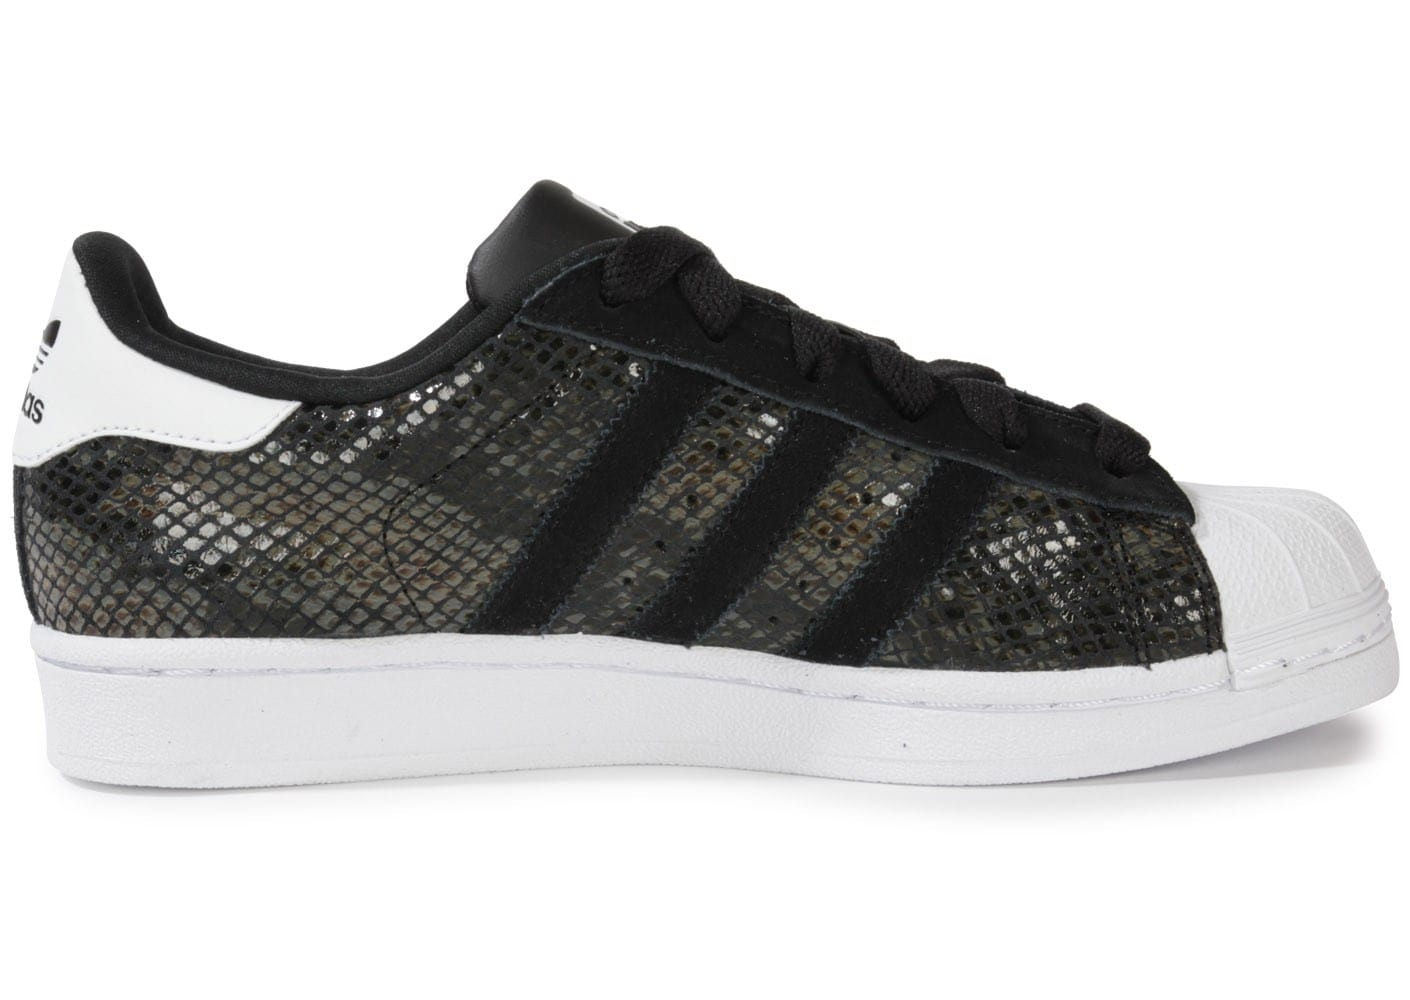 Chaussures Adidas Serpent Adidas Superstar Serpent Superstar Adidas Chaussures Serpent Adidas Chaussures Superstar Chaussures Superstar UMVpGqzS